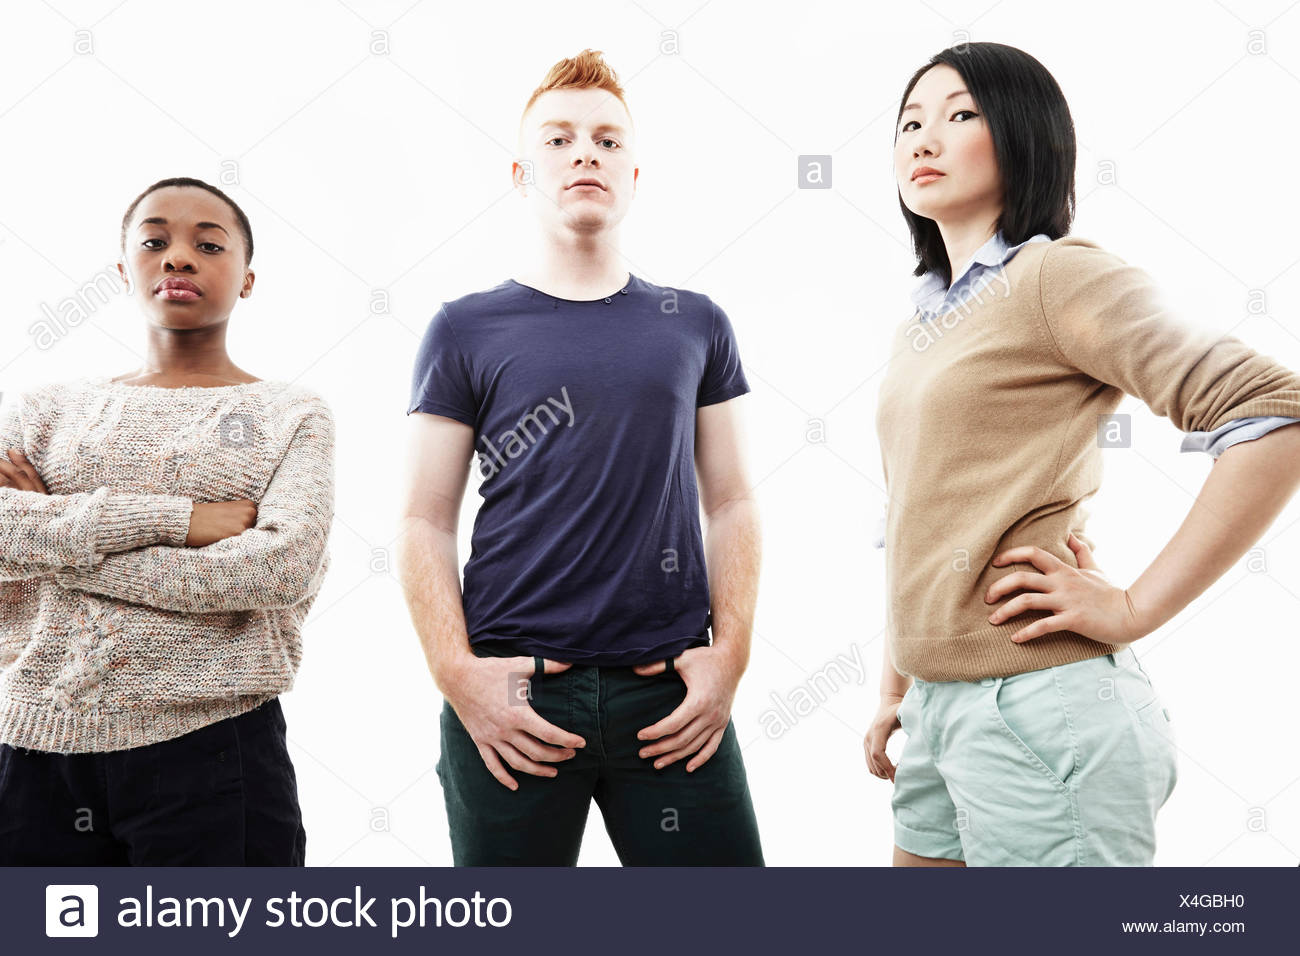 Studio portrait of three young individual adults - Stock Image